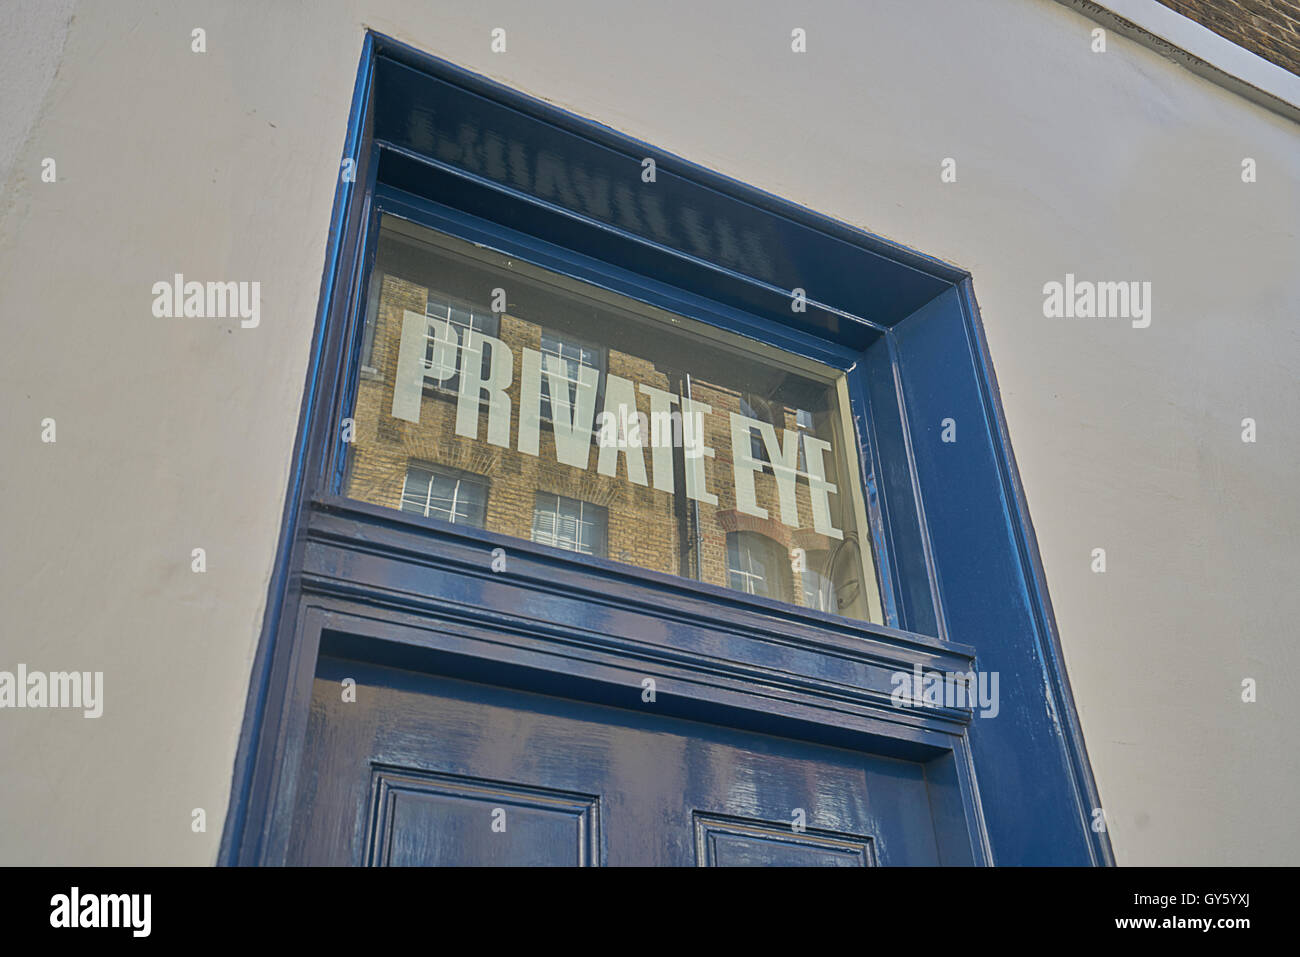 private eye offices,  London - Stock Image